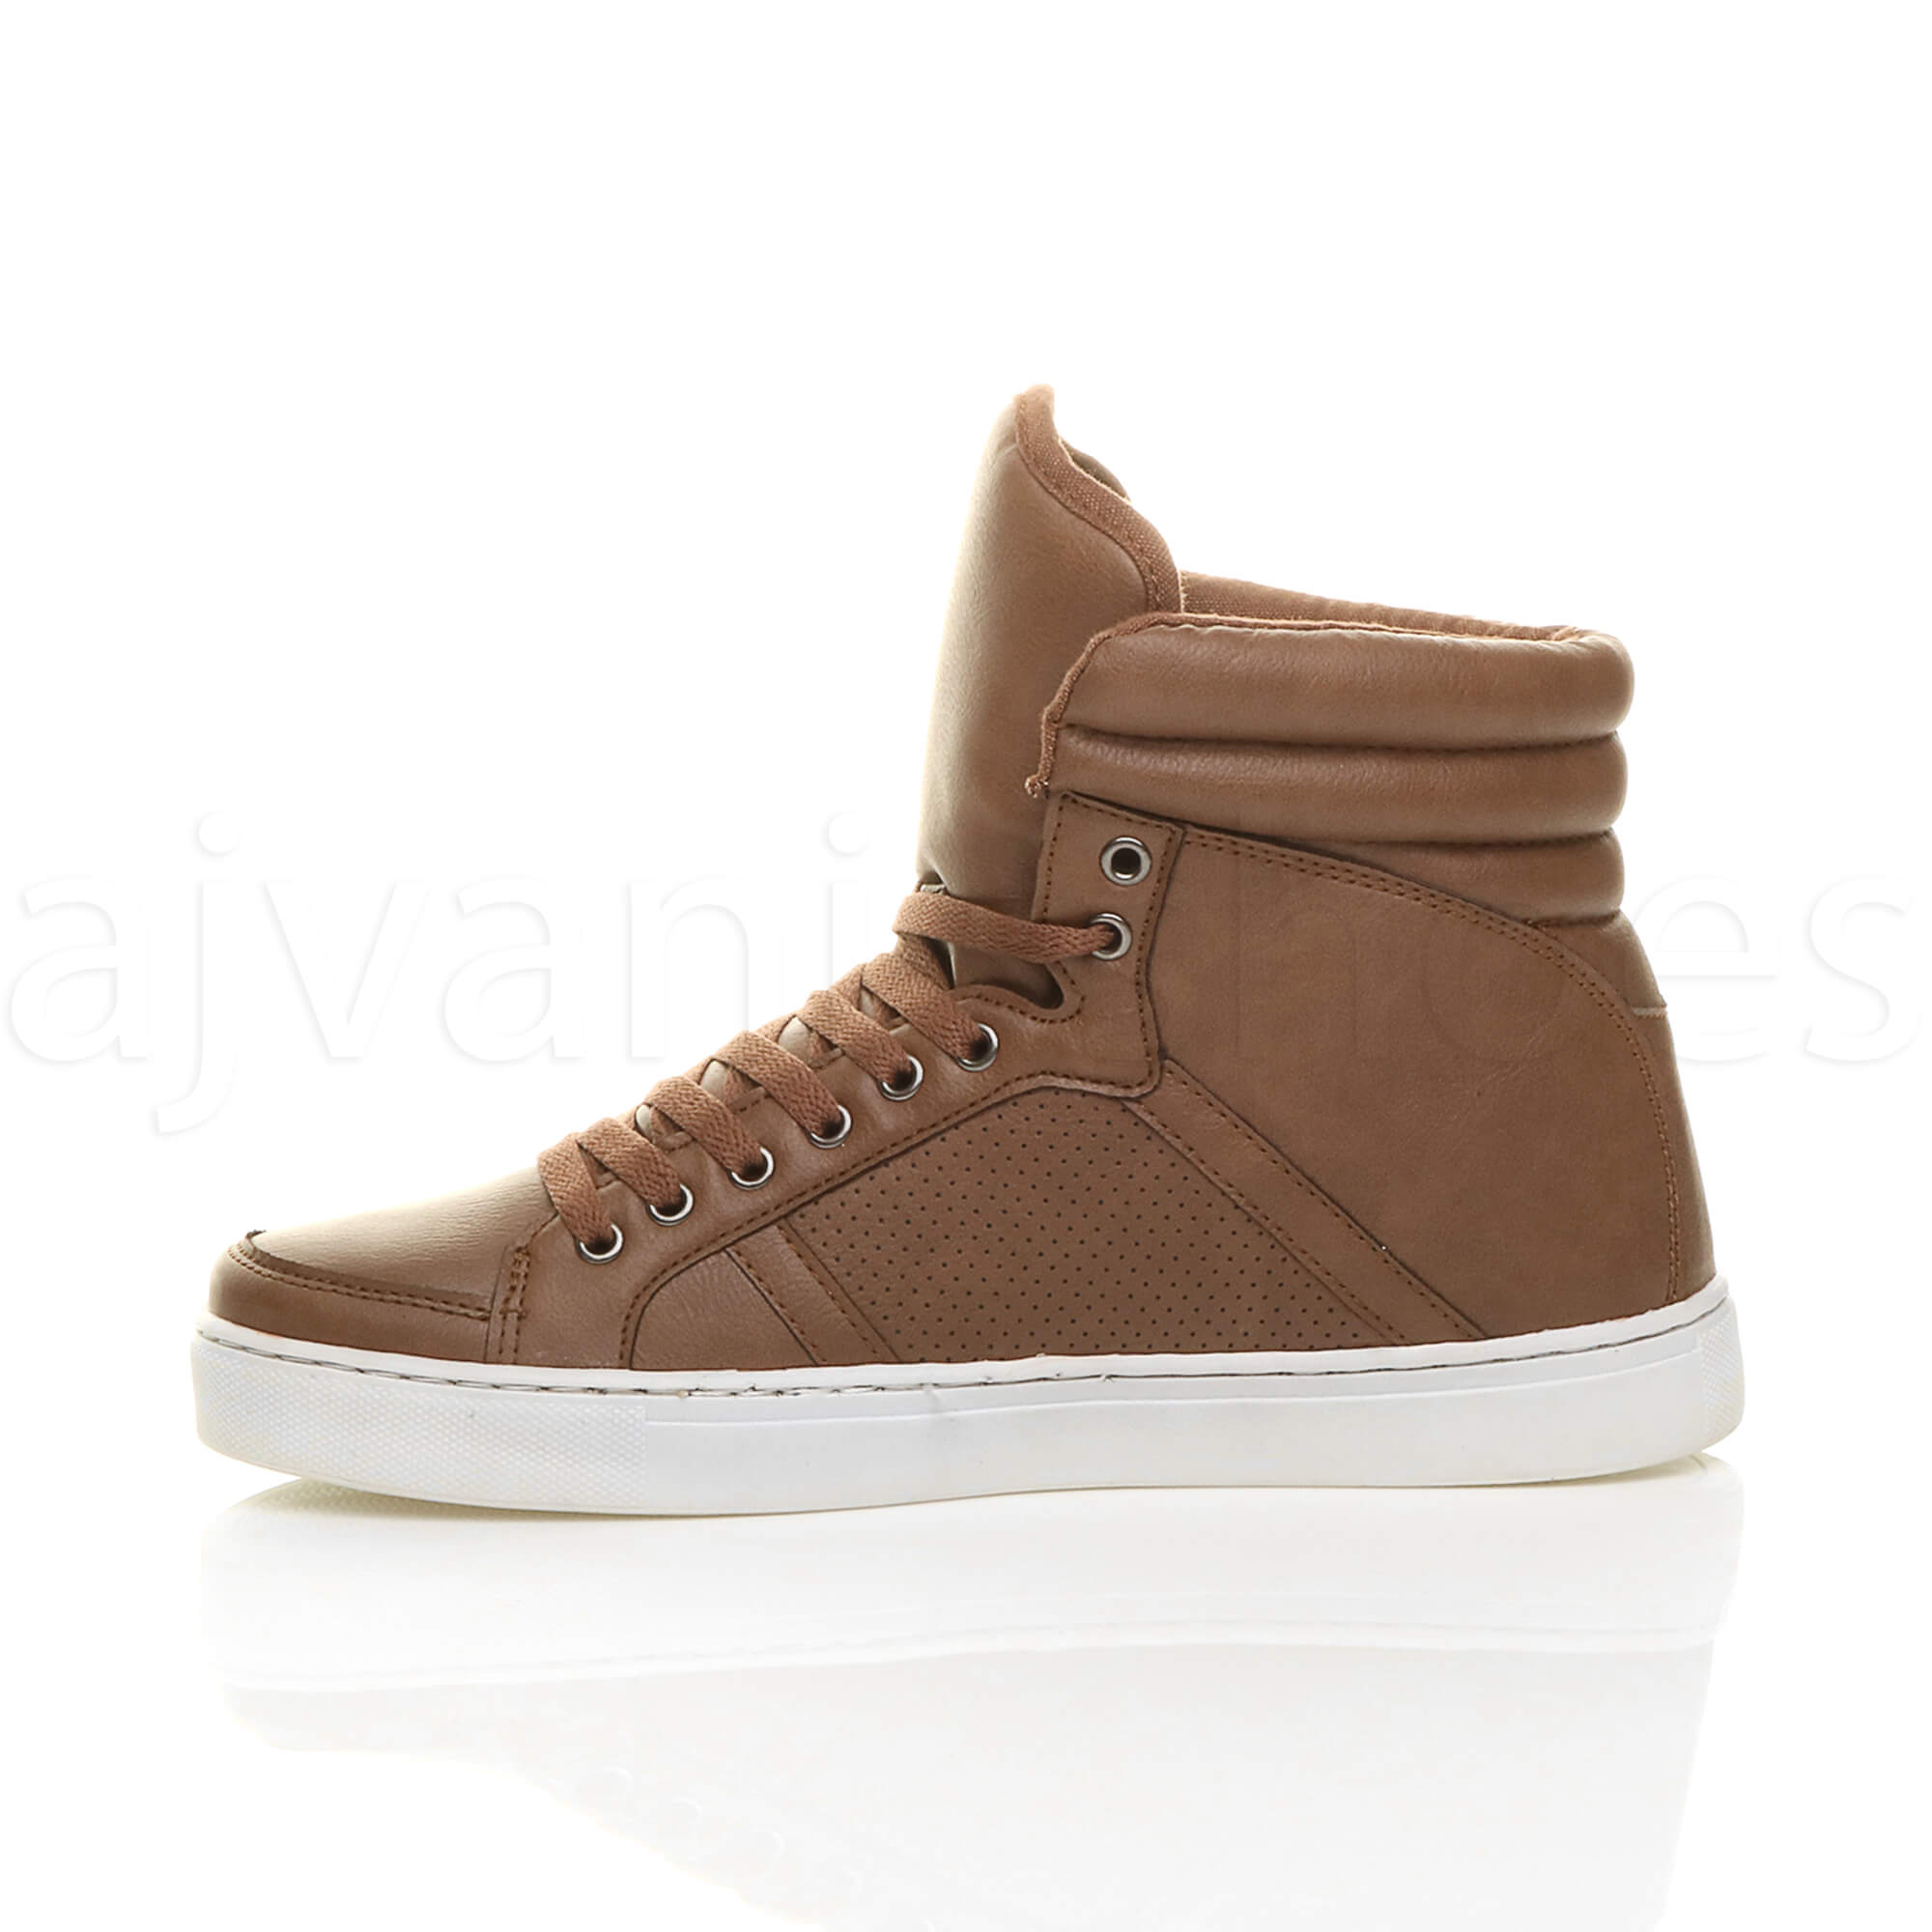 MENS-LACE-UP-CASUAL-FLAT-HI-HIGH-TOP-ANKLE-BOOTS-SHOES-TRAINERS-SNEAKERS-SIZE thumbnail 25